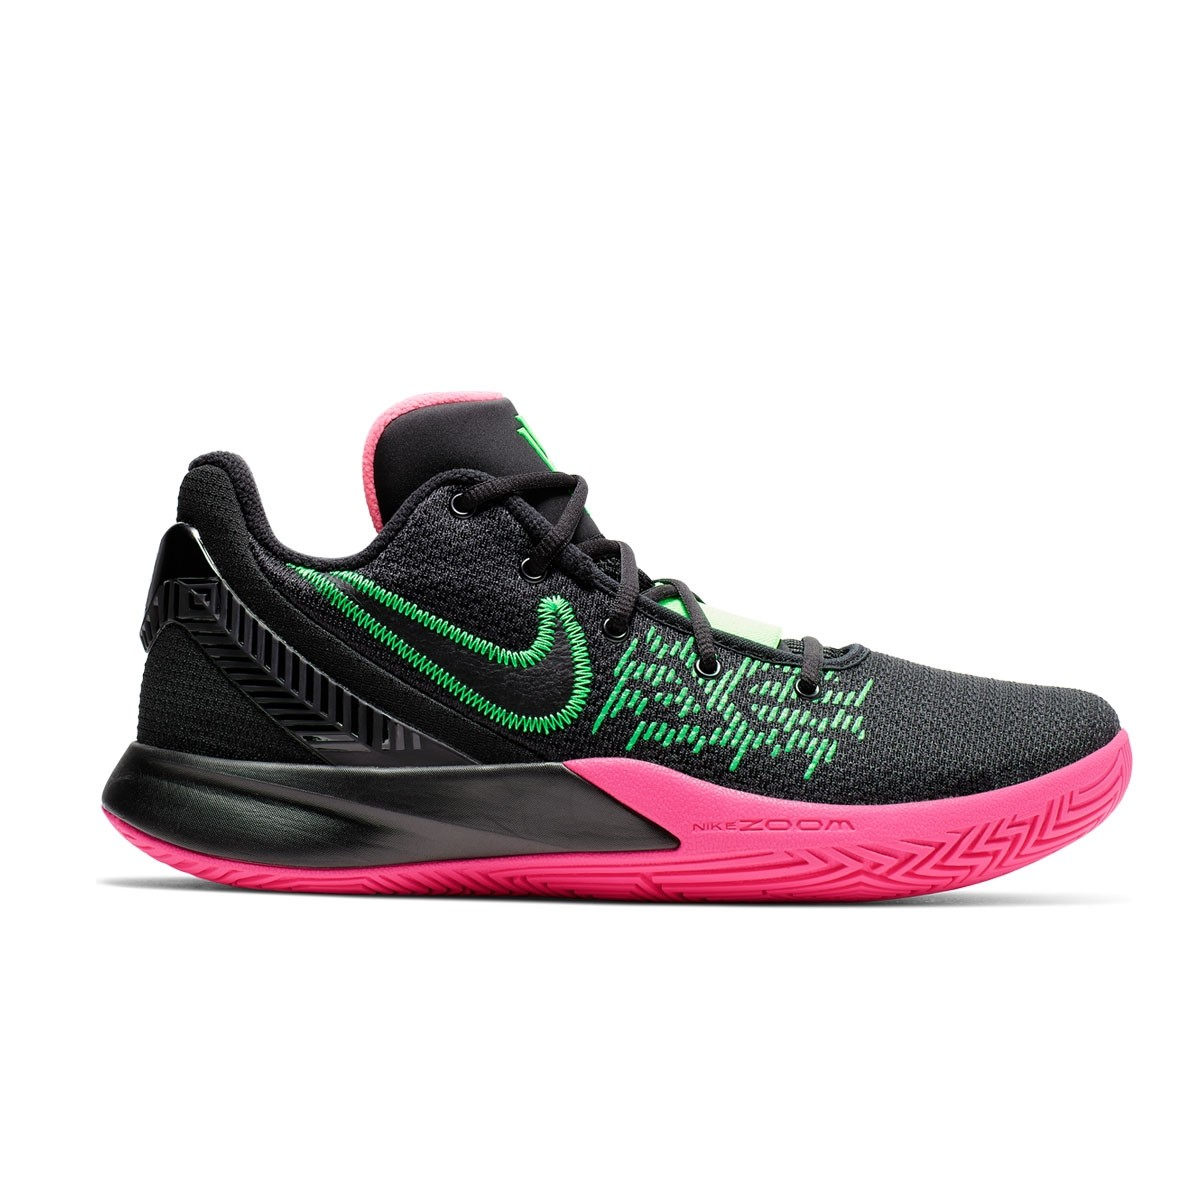 check-out 1f66b f55ac Nike Kyrie Flytrap II GS 'Hyper Pink'